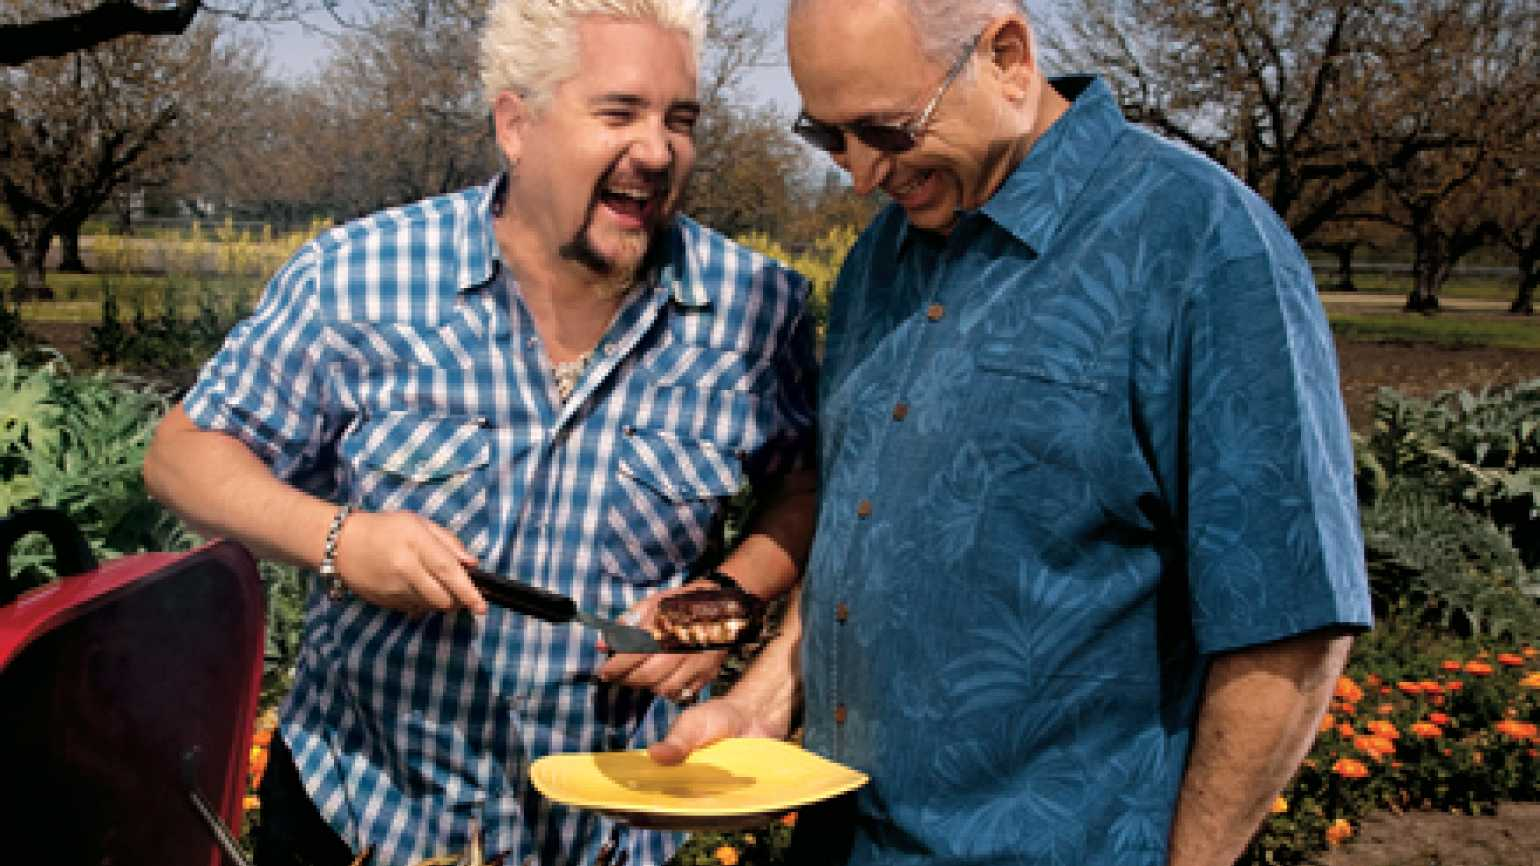 Celebrity chef Guy Fieri and his father